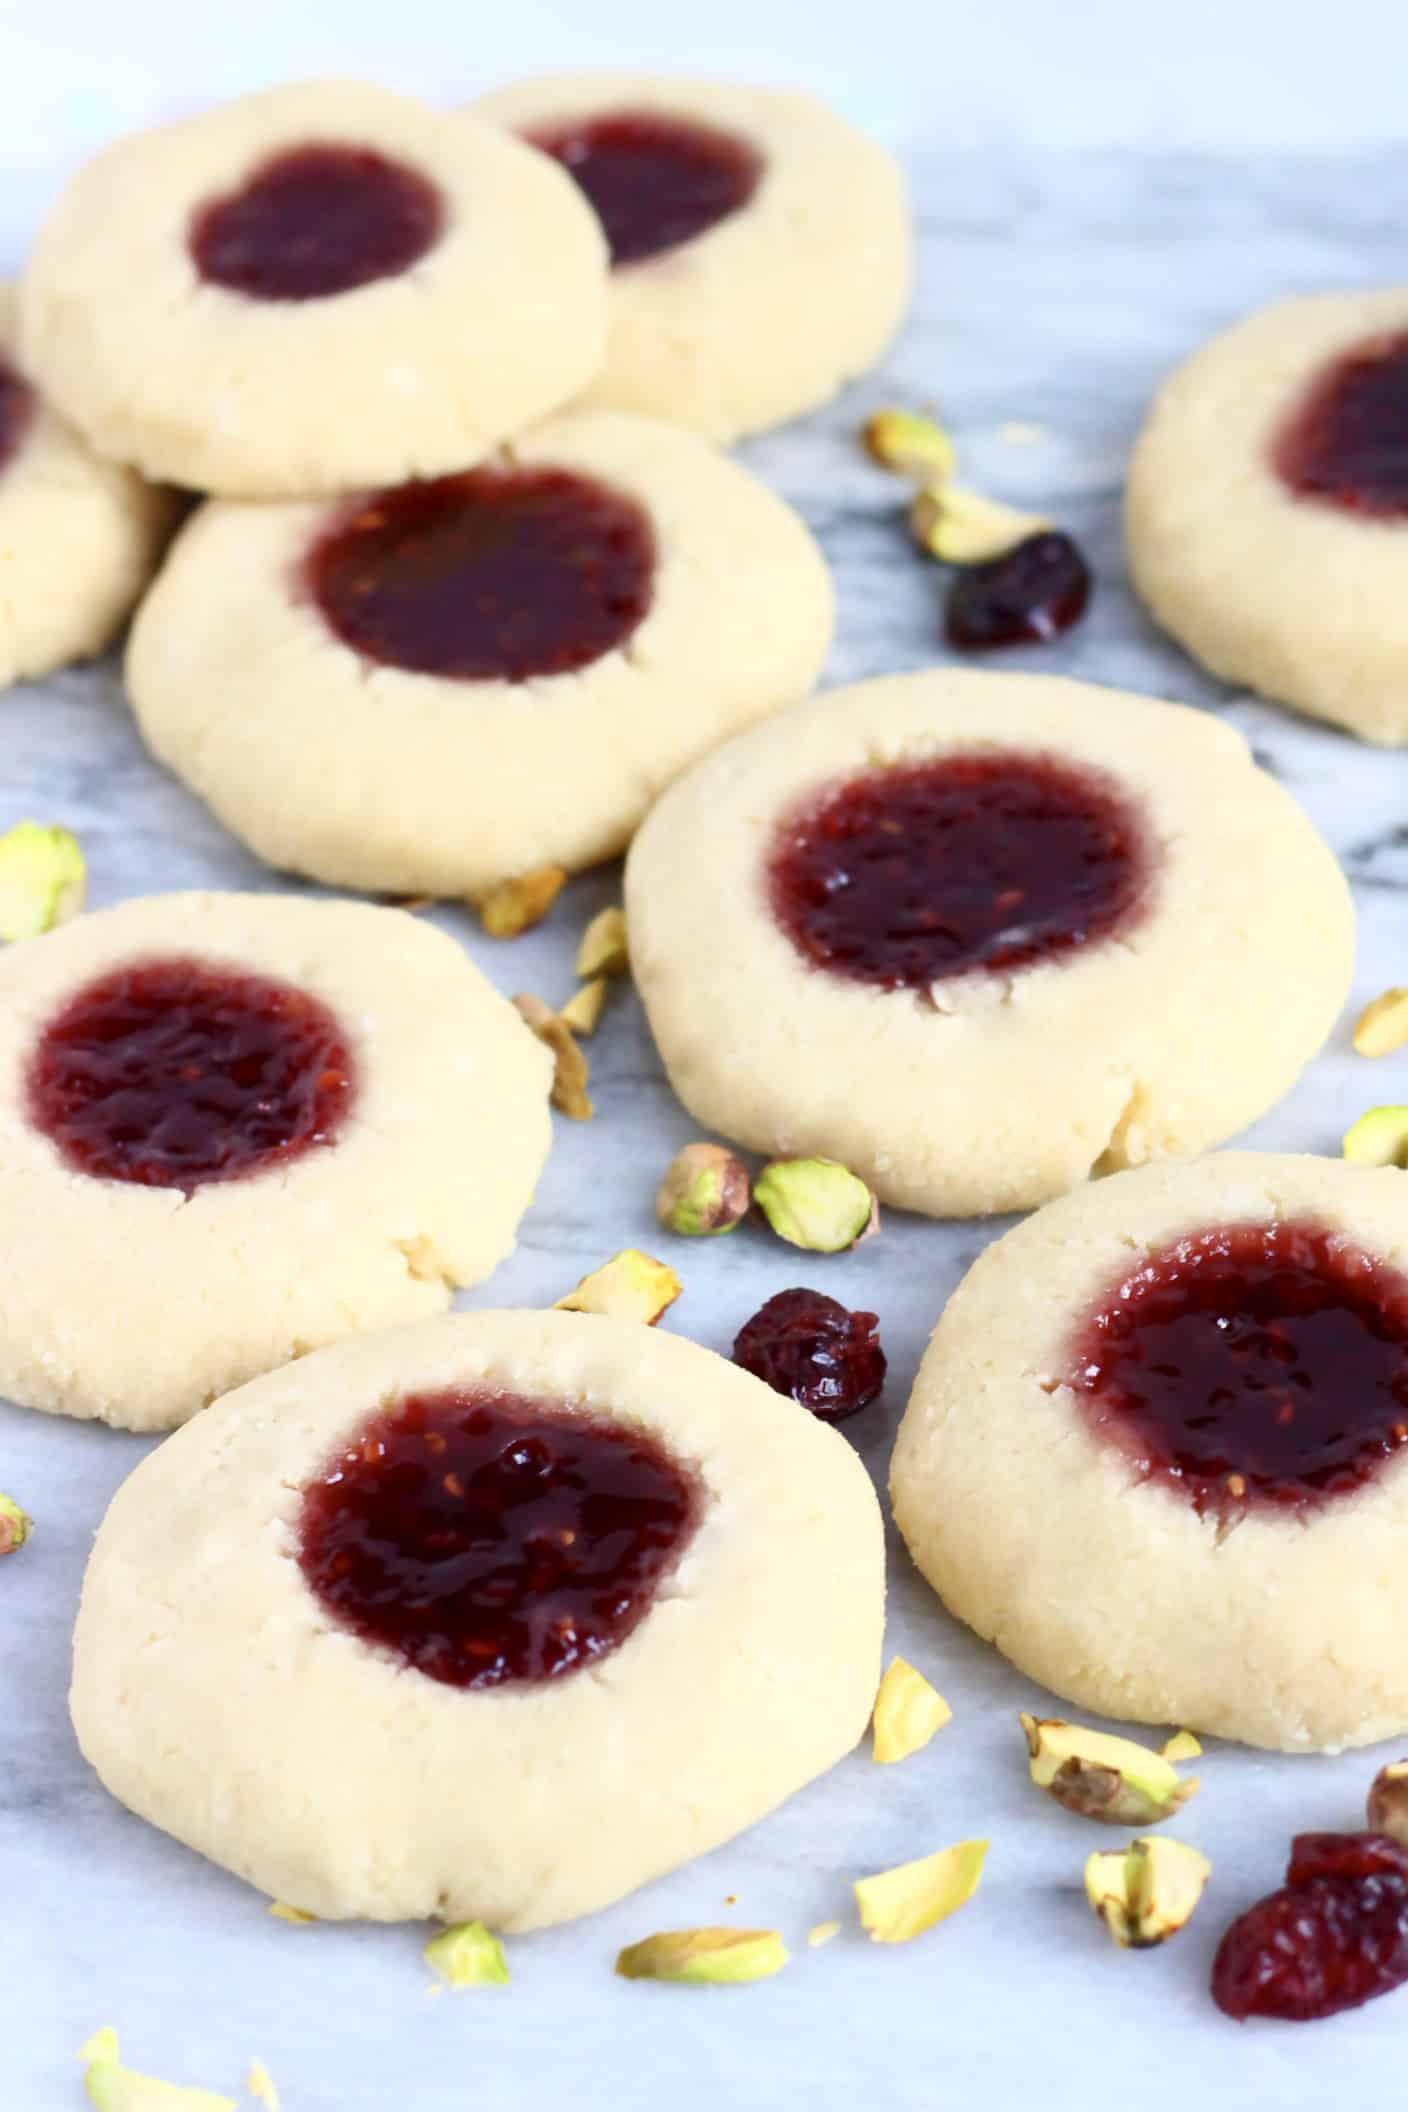 Nine gluten-free vegan thumbprint cookies filled with raspberry jam on a marble background